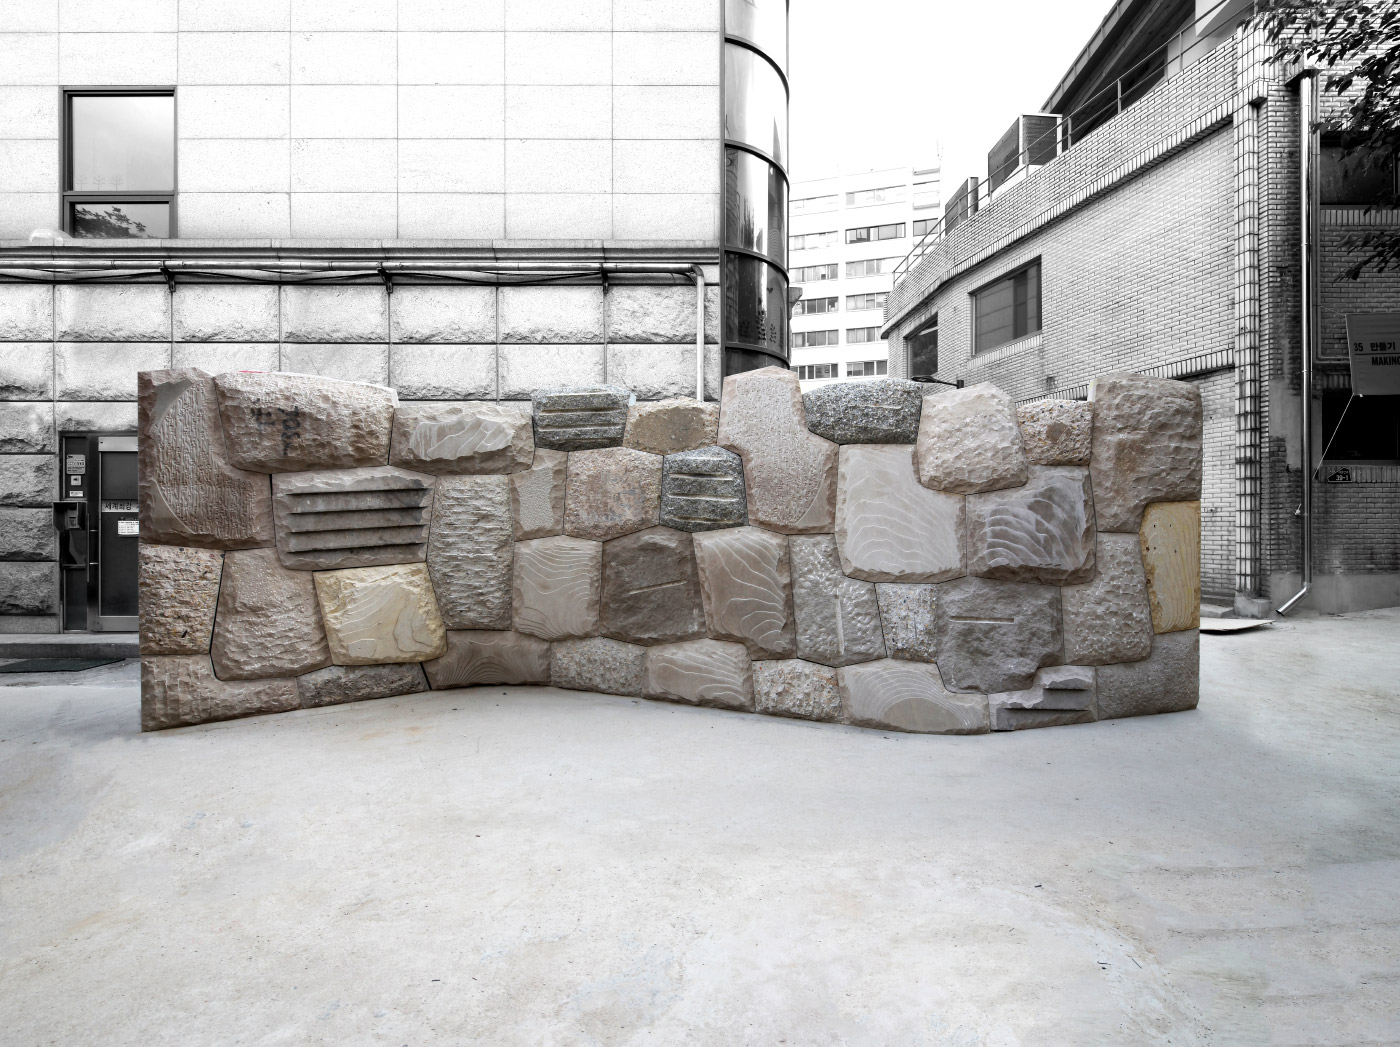 Installation view of Cyclopean Cannibalism in Seoul.